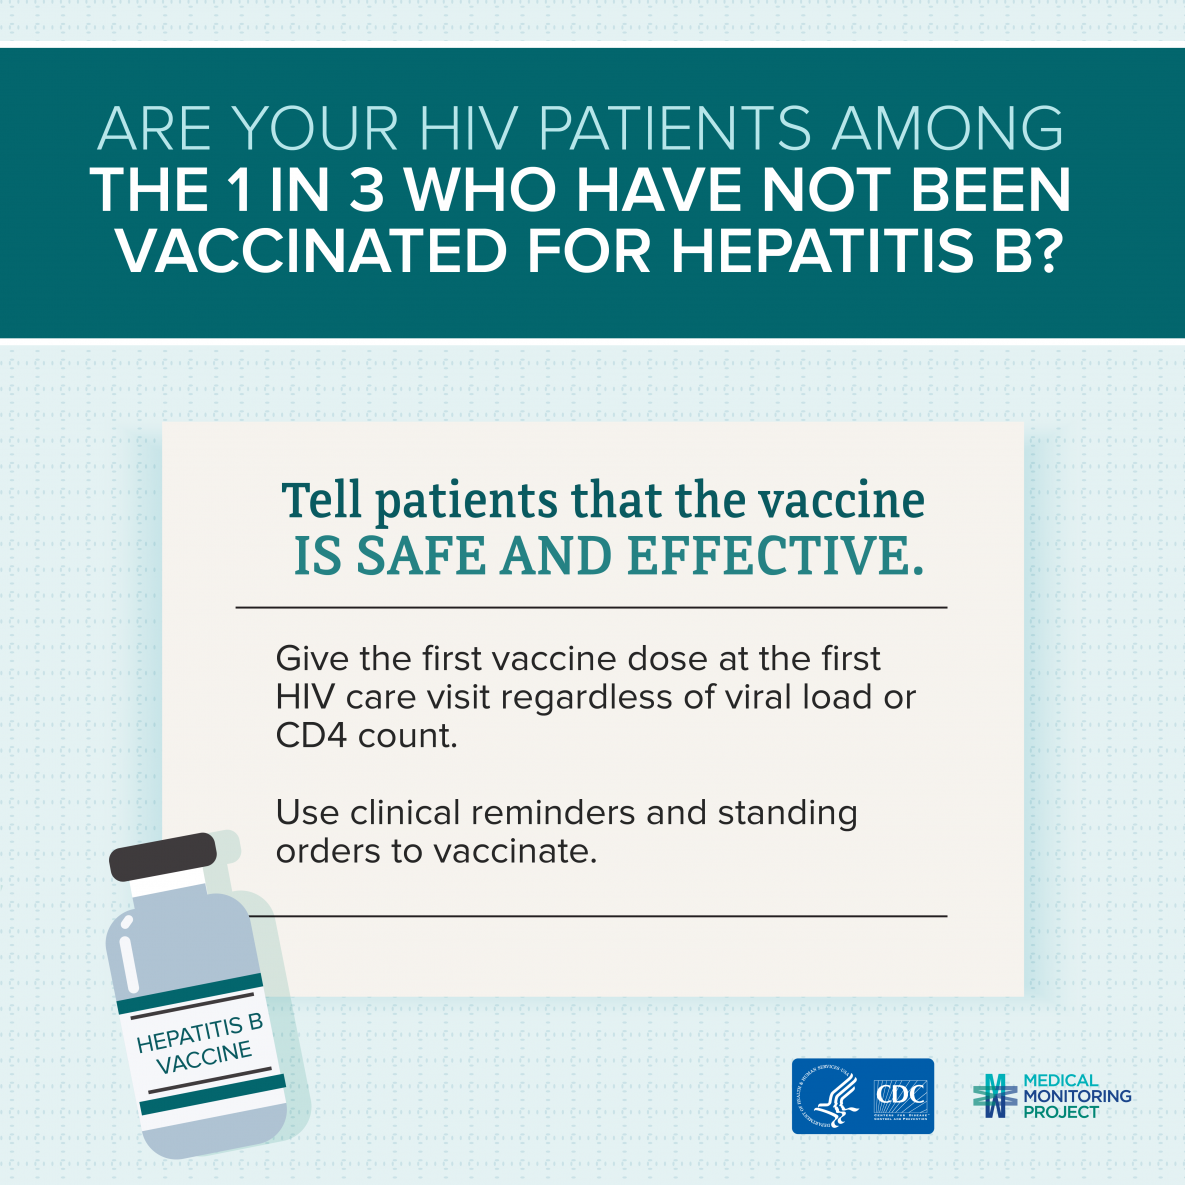 Are your patients among the 1 in 3 who have not been vaccinated for Hepatitis B? 1 in 3 people living with HIV have not been vaccinated for Hepatitis B? Tell patients that the vaccine is safe and effective. Give the first vaccine dose at the first HIV care visit regardless of viral load or CD4 count. Use clinical reminders and standing orders to vaccinate.